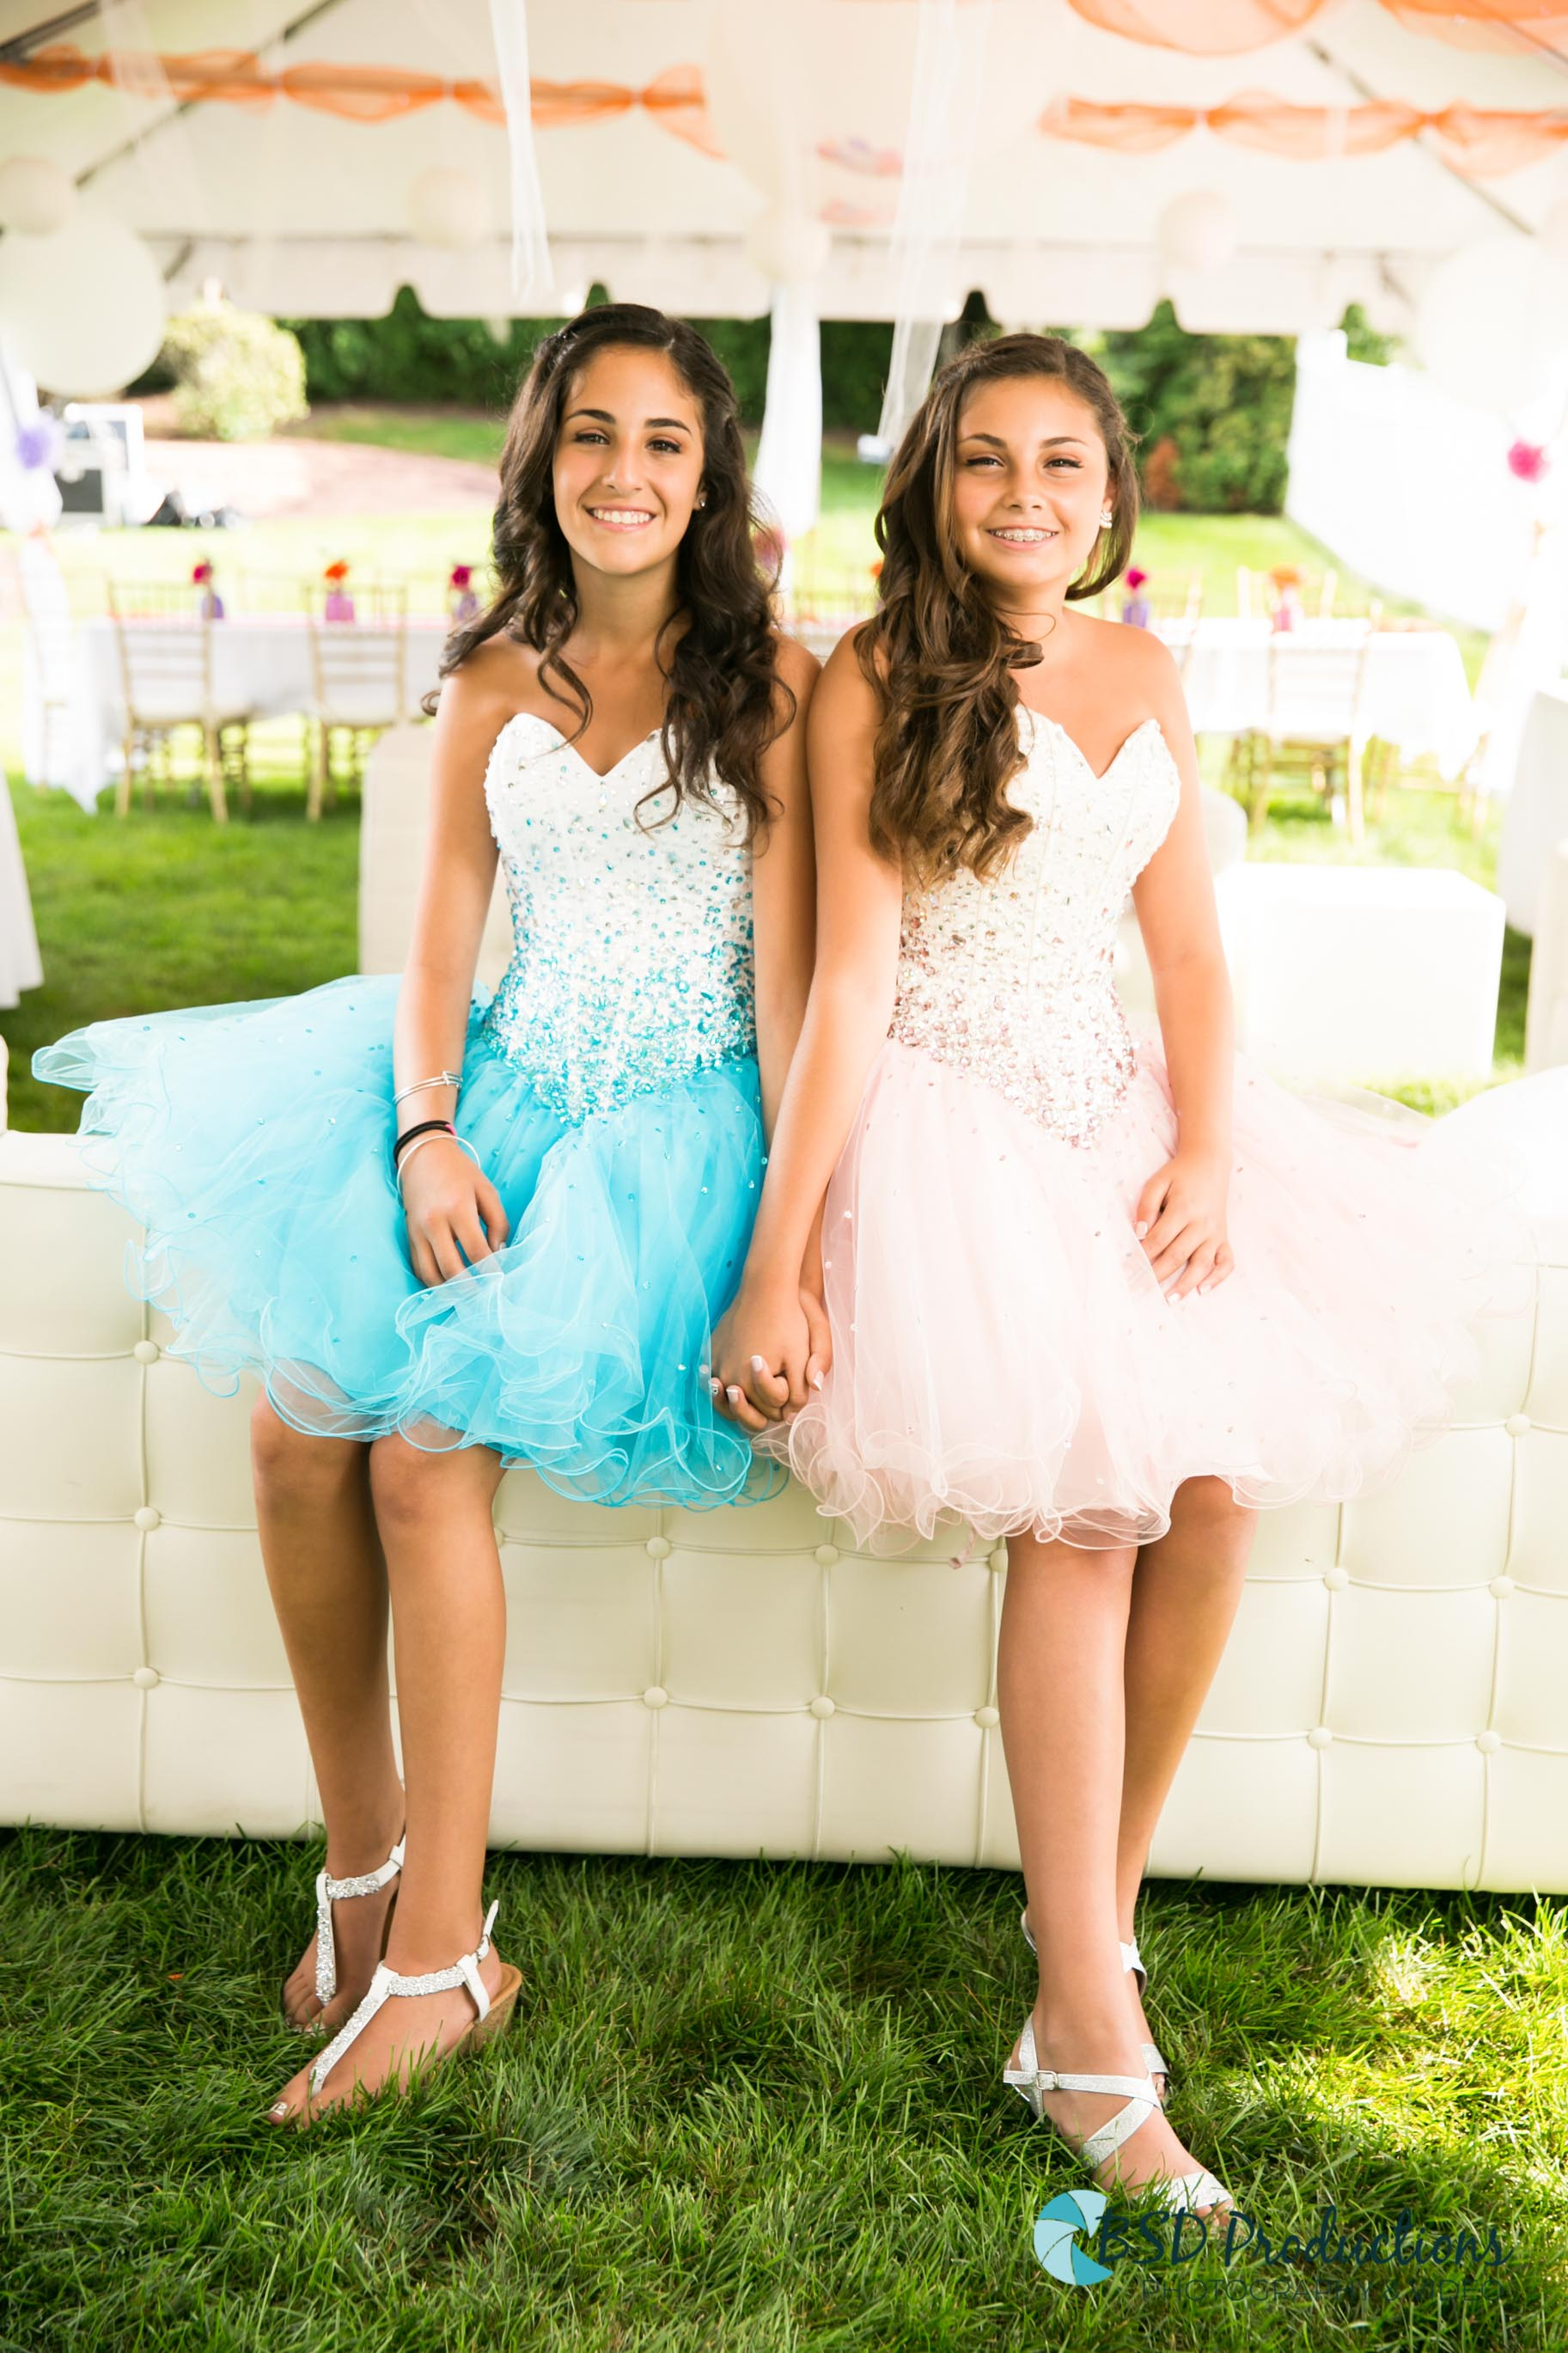 D_R_4542 Bat Mitzvah – BSD Prodcutions Photography